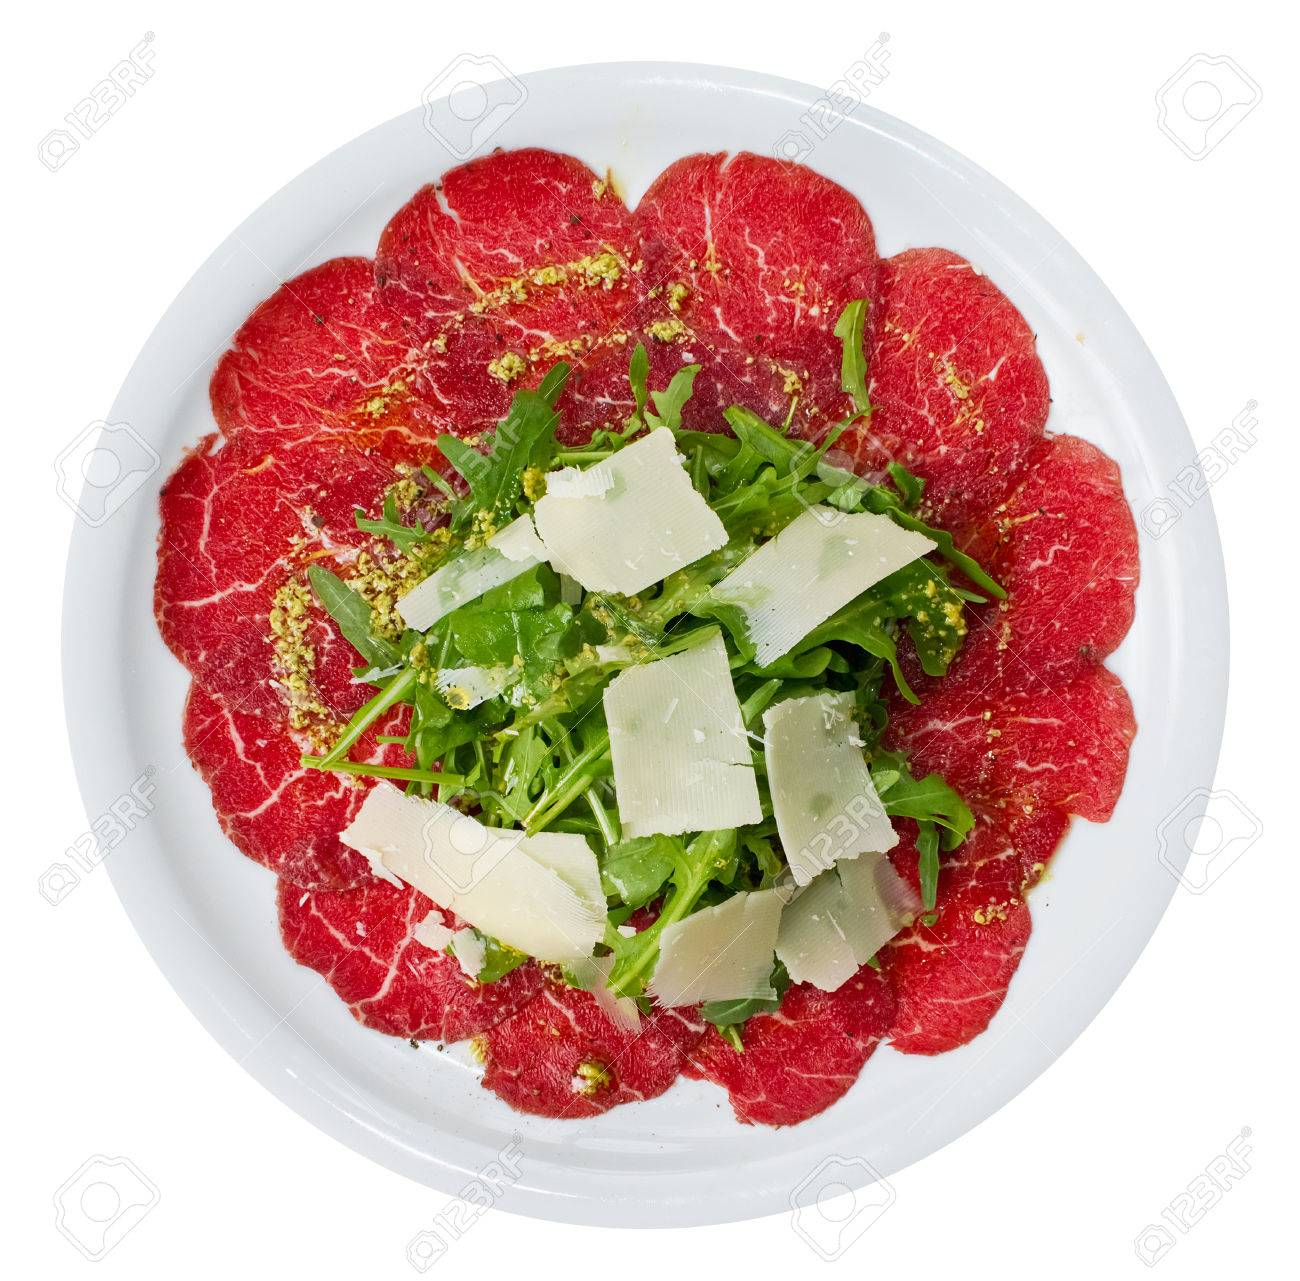 Carpaccio is a dish of raw meat  (such as beef, veal or venison), thinly sliced or pounded thin and served mainly as an appetizer. Standard-Bild - 23115154